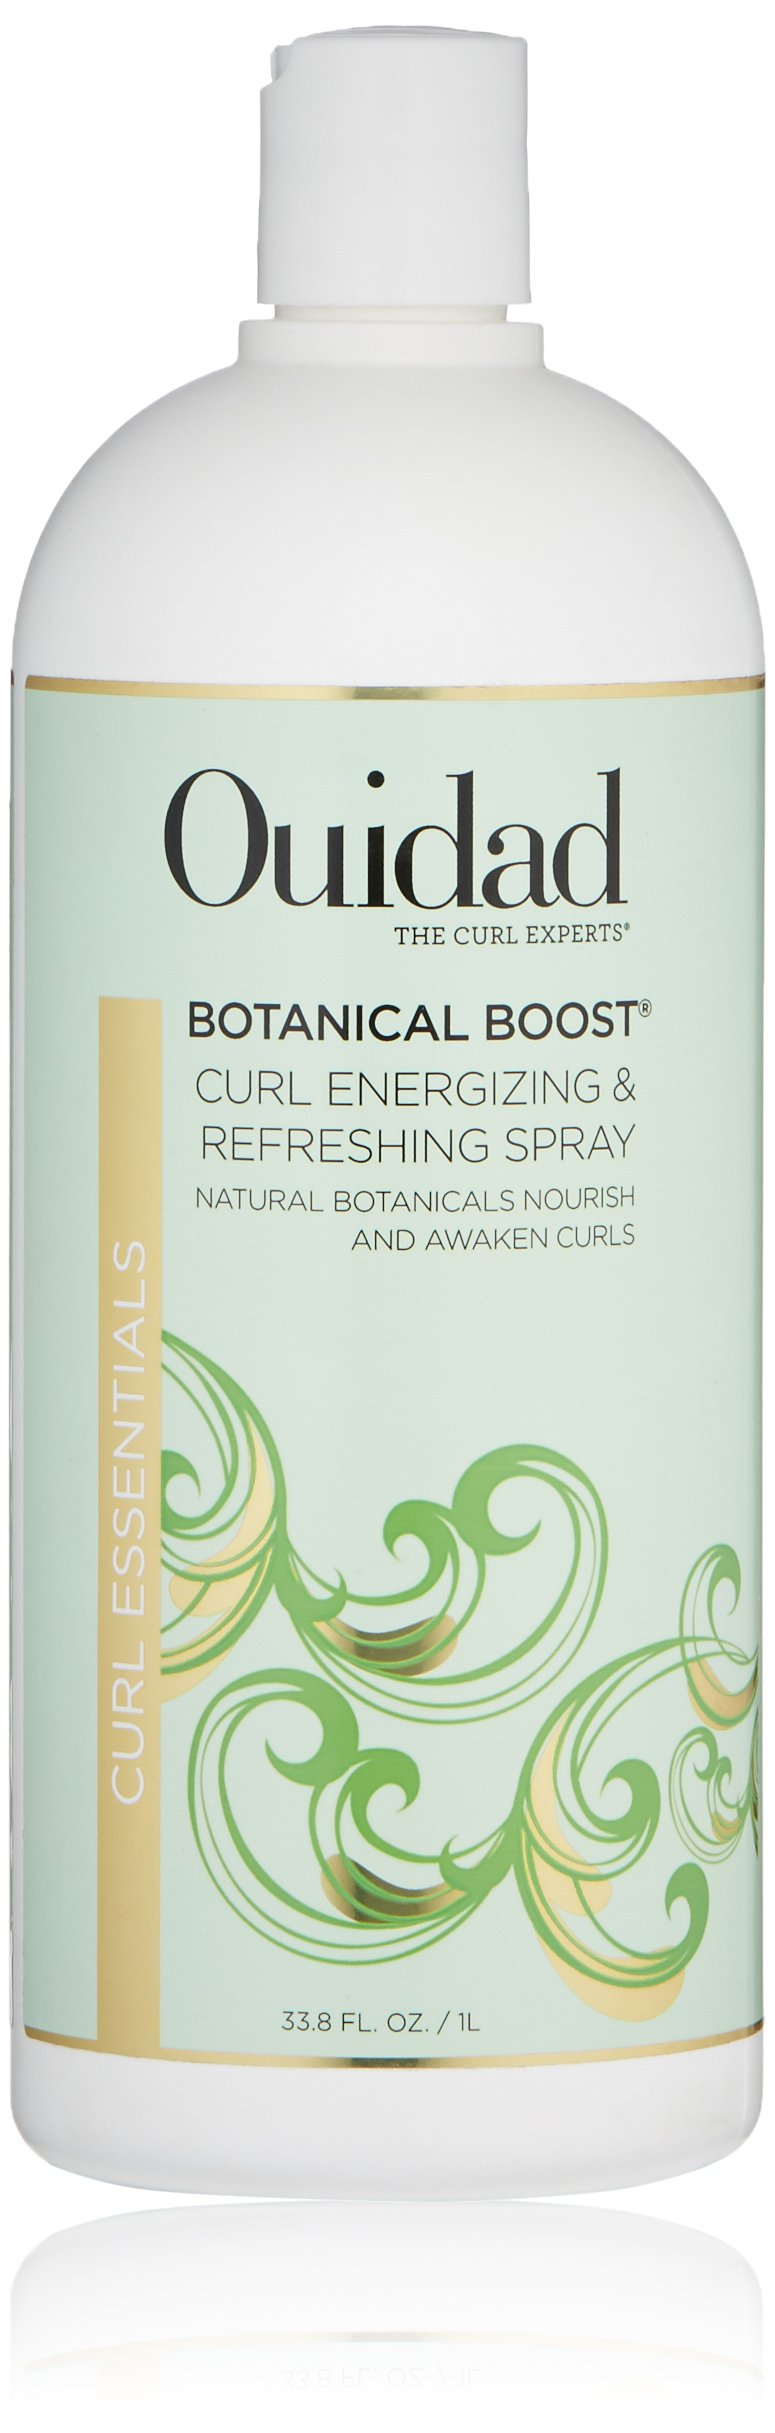 OUIDAD Botanical Boost Curl Energizing & Refreshing Spray, 33.8 Fl Oz